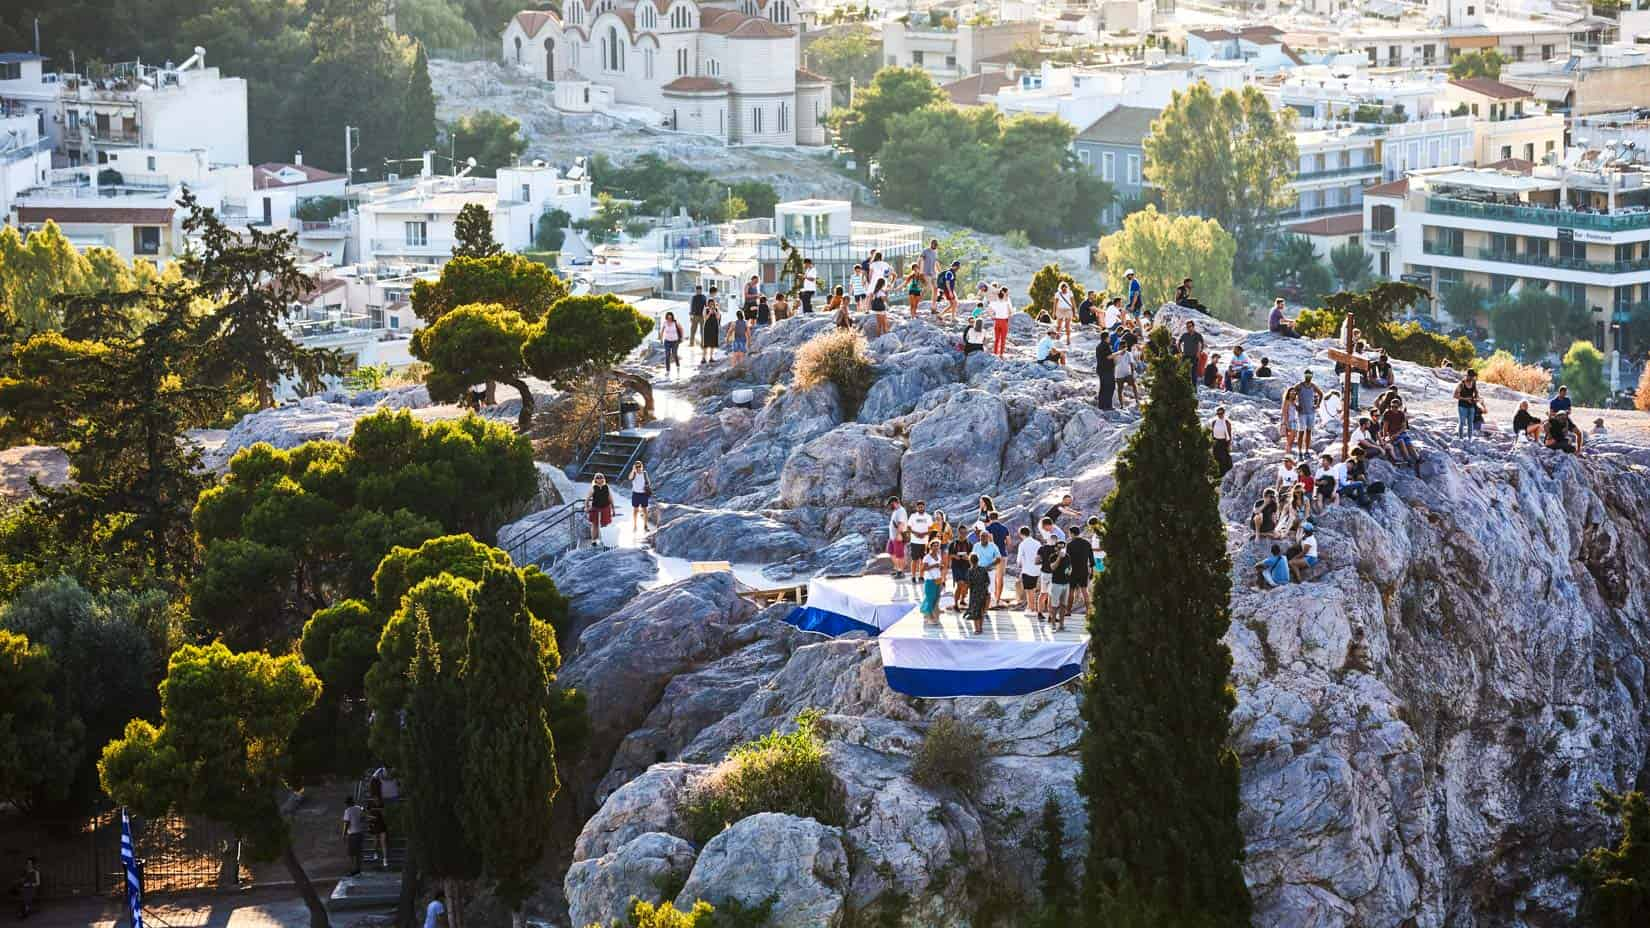 Students on a rock to view the city of Athens from above.